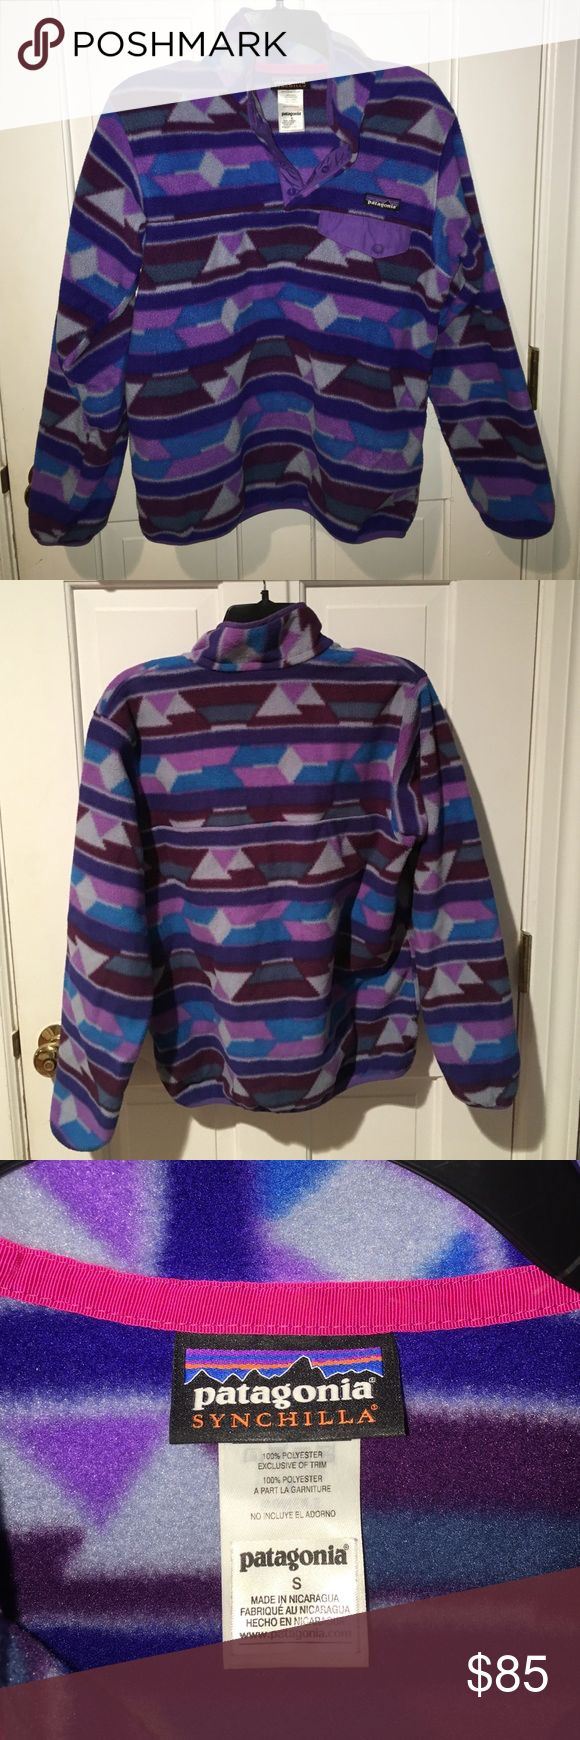 Patagonia Synchilla Jacket size S Patterned Synchilla Patagonia jacket, very lightly worn. Size Small. Super warm and comfy! Patagonia Jackets & Coats Puffers